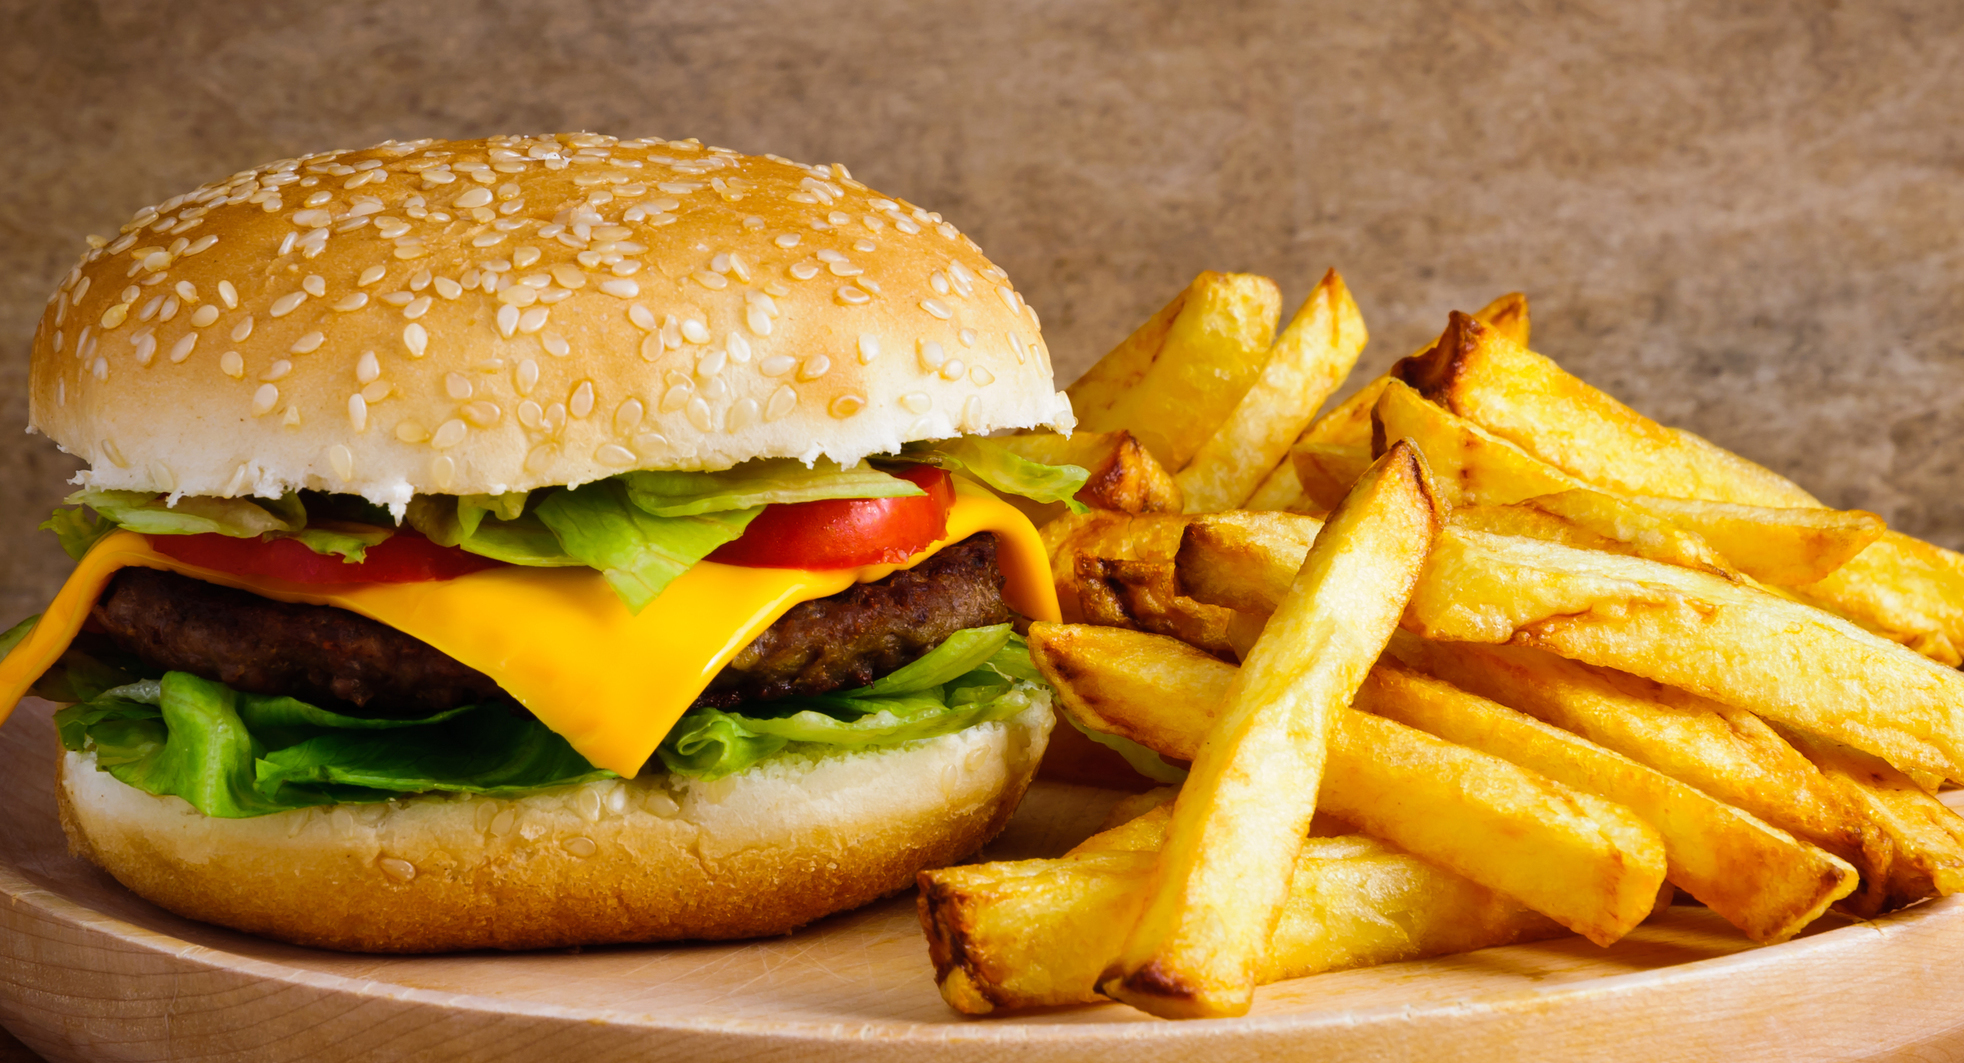 hr er in fast food The fast food industry has been experiencing a tremendous growth according to royle and towers (2002), this rapid expansion of fast food industry over the last 30 years has led to about 70 per cent of the employment in united kingdom, canada and united states.